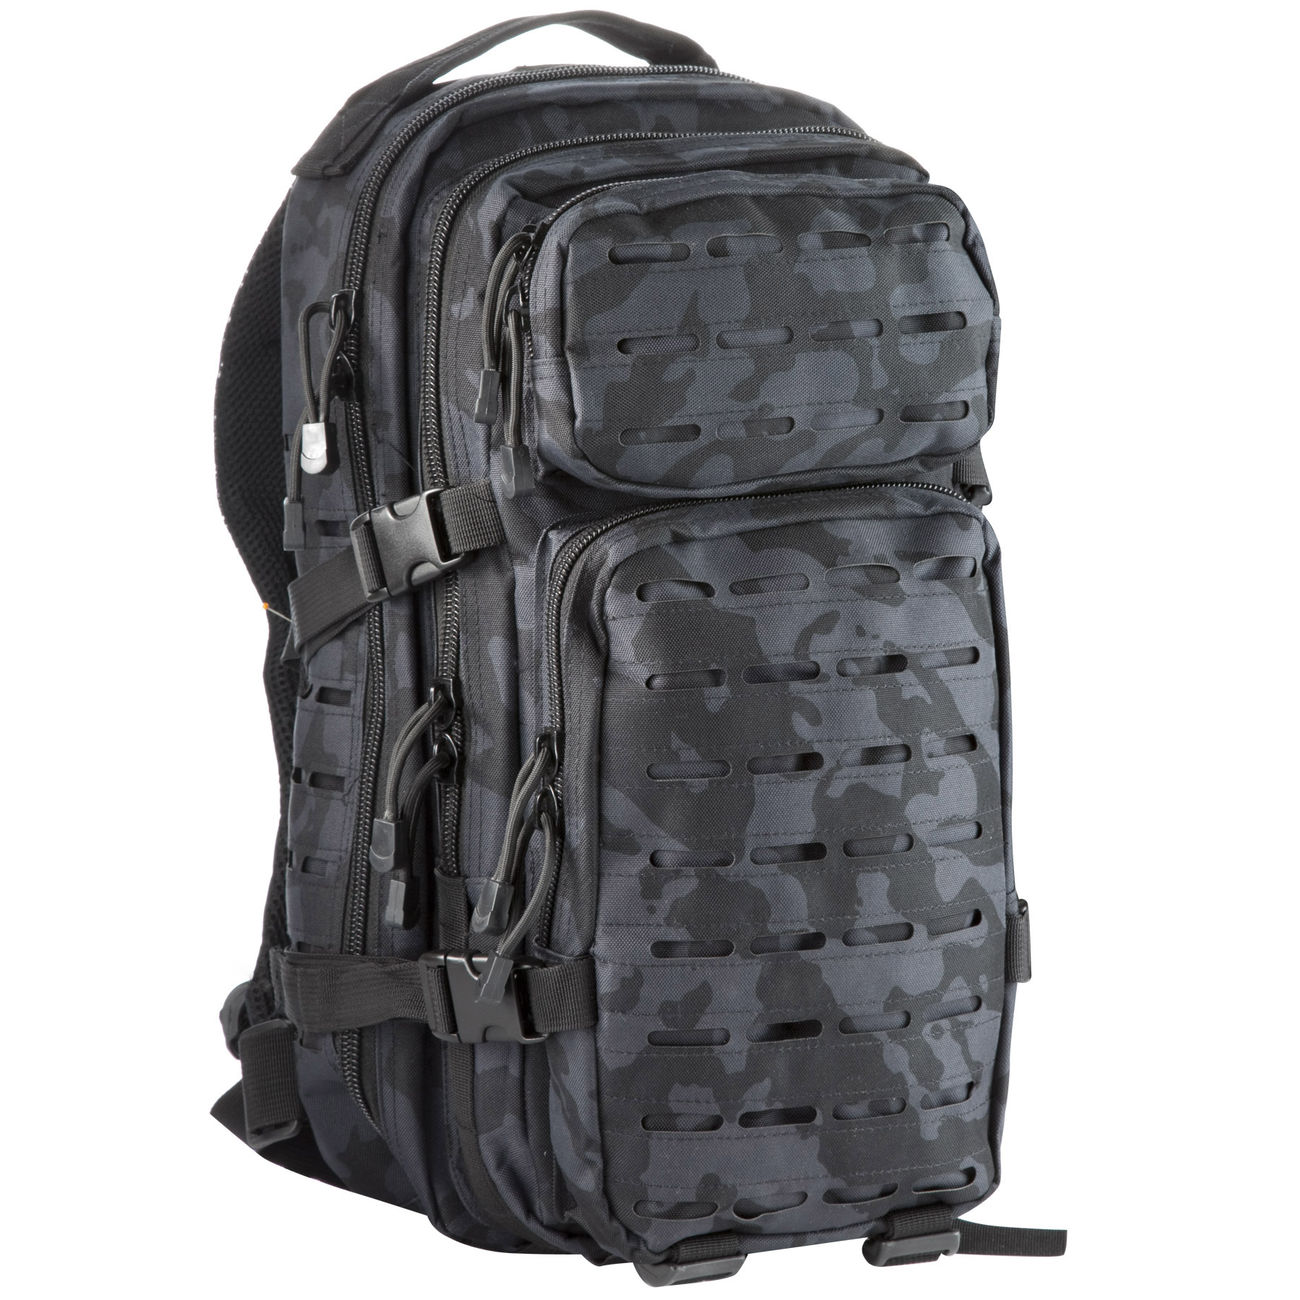 MFH Rucksack US Assault I Laser 30L night camo 0